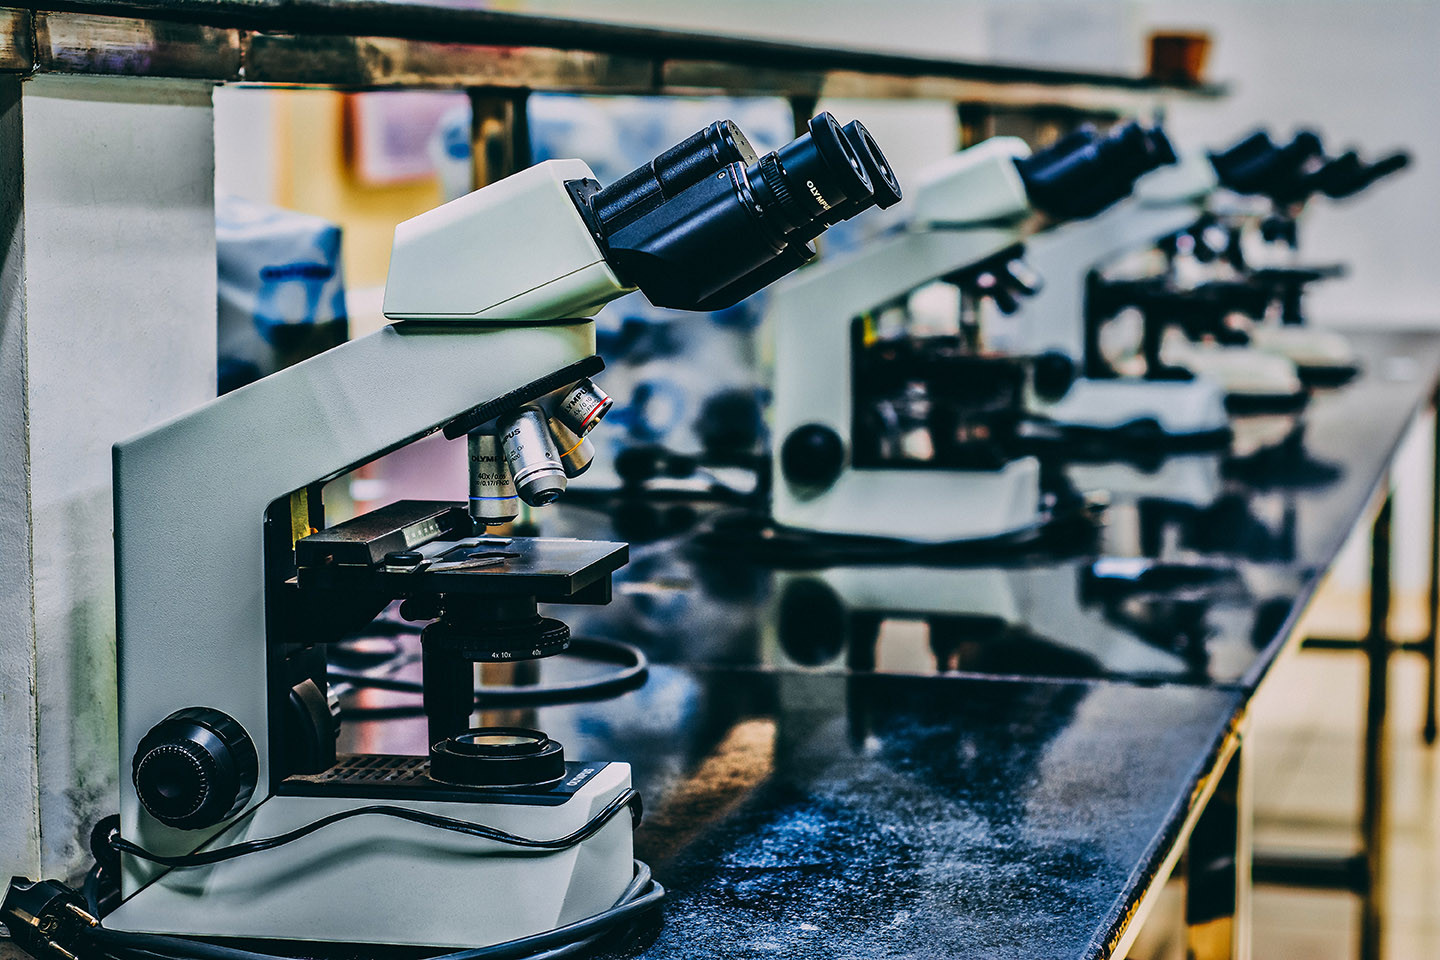 Row of microscopes on a lab bench